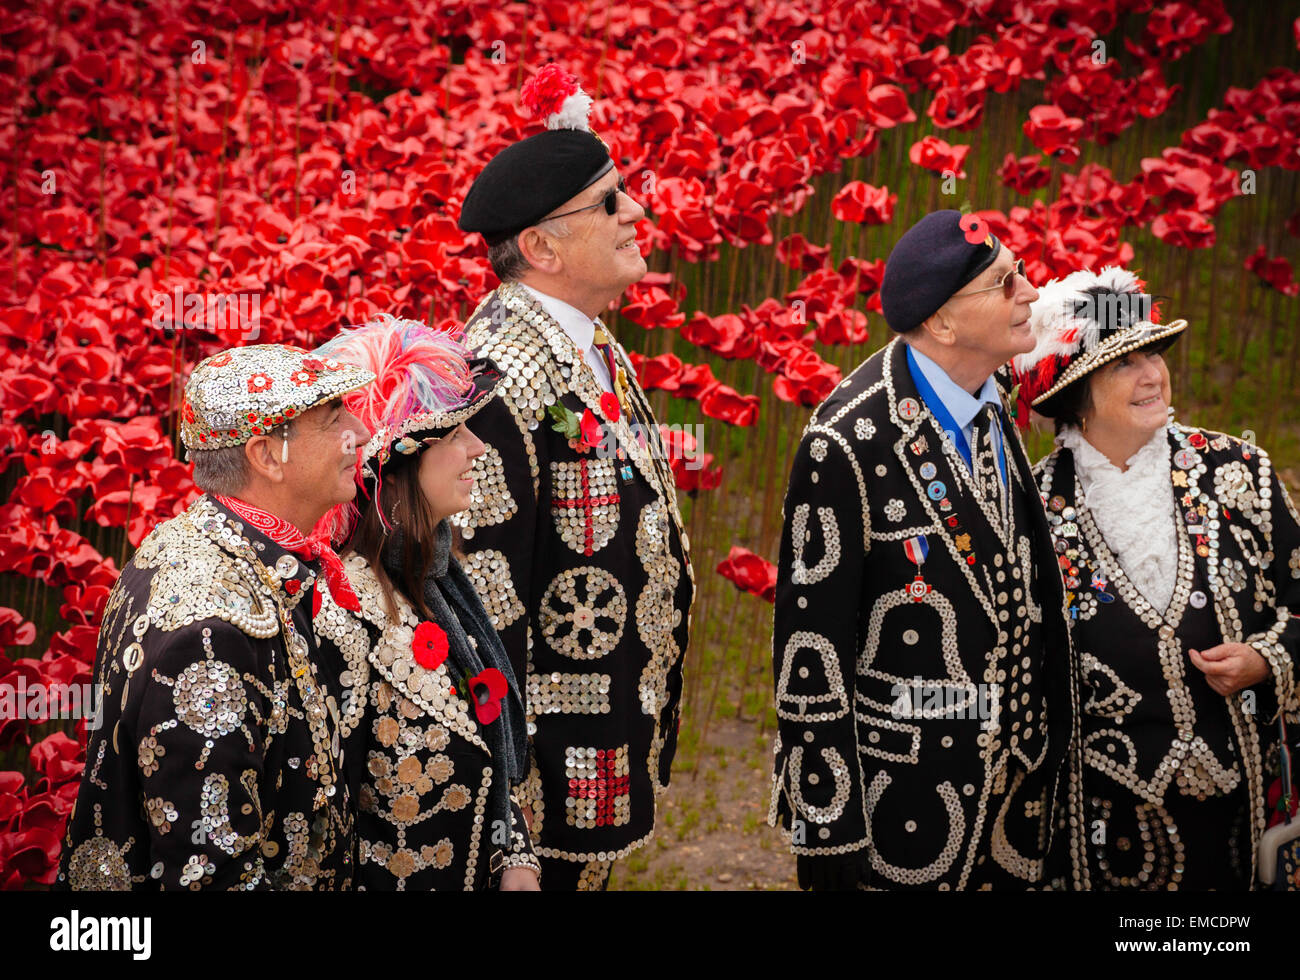 A generation of pearly kings and queens on armistice day at the Tower of London, UK. - Stock Image